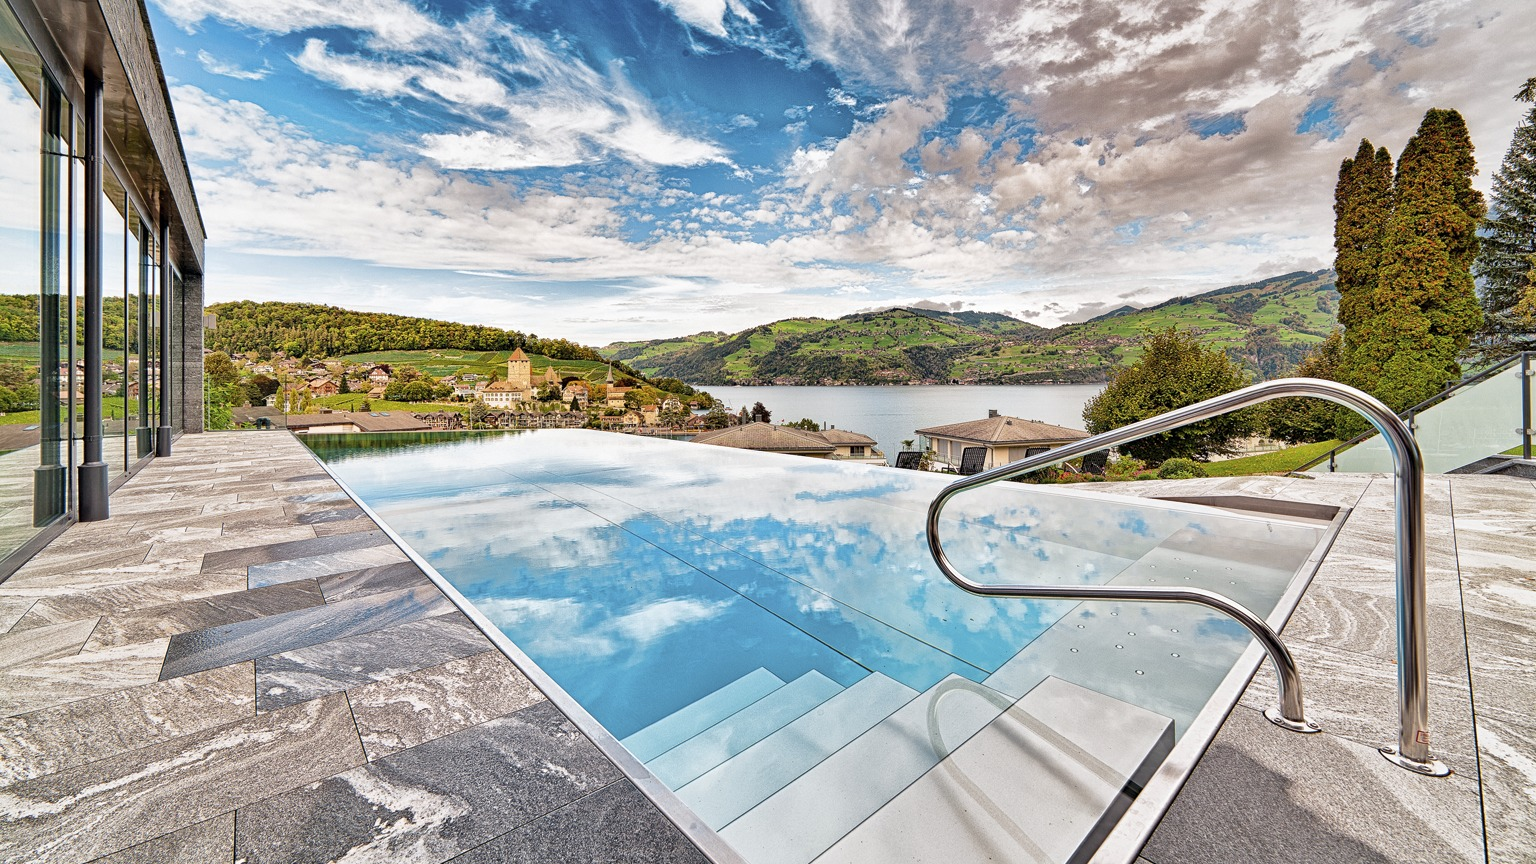 Luxus Outdoor Pool Panoramic Outdoor Pools Switzerland Tourism